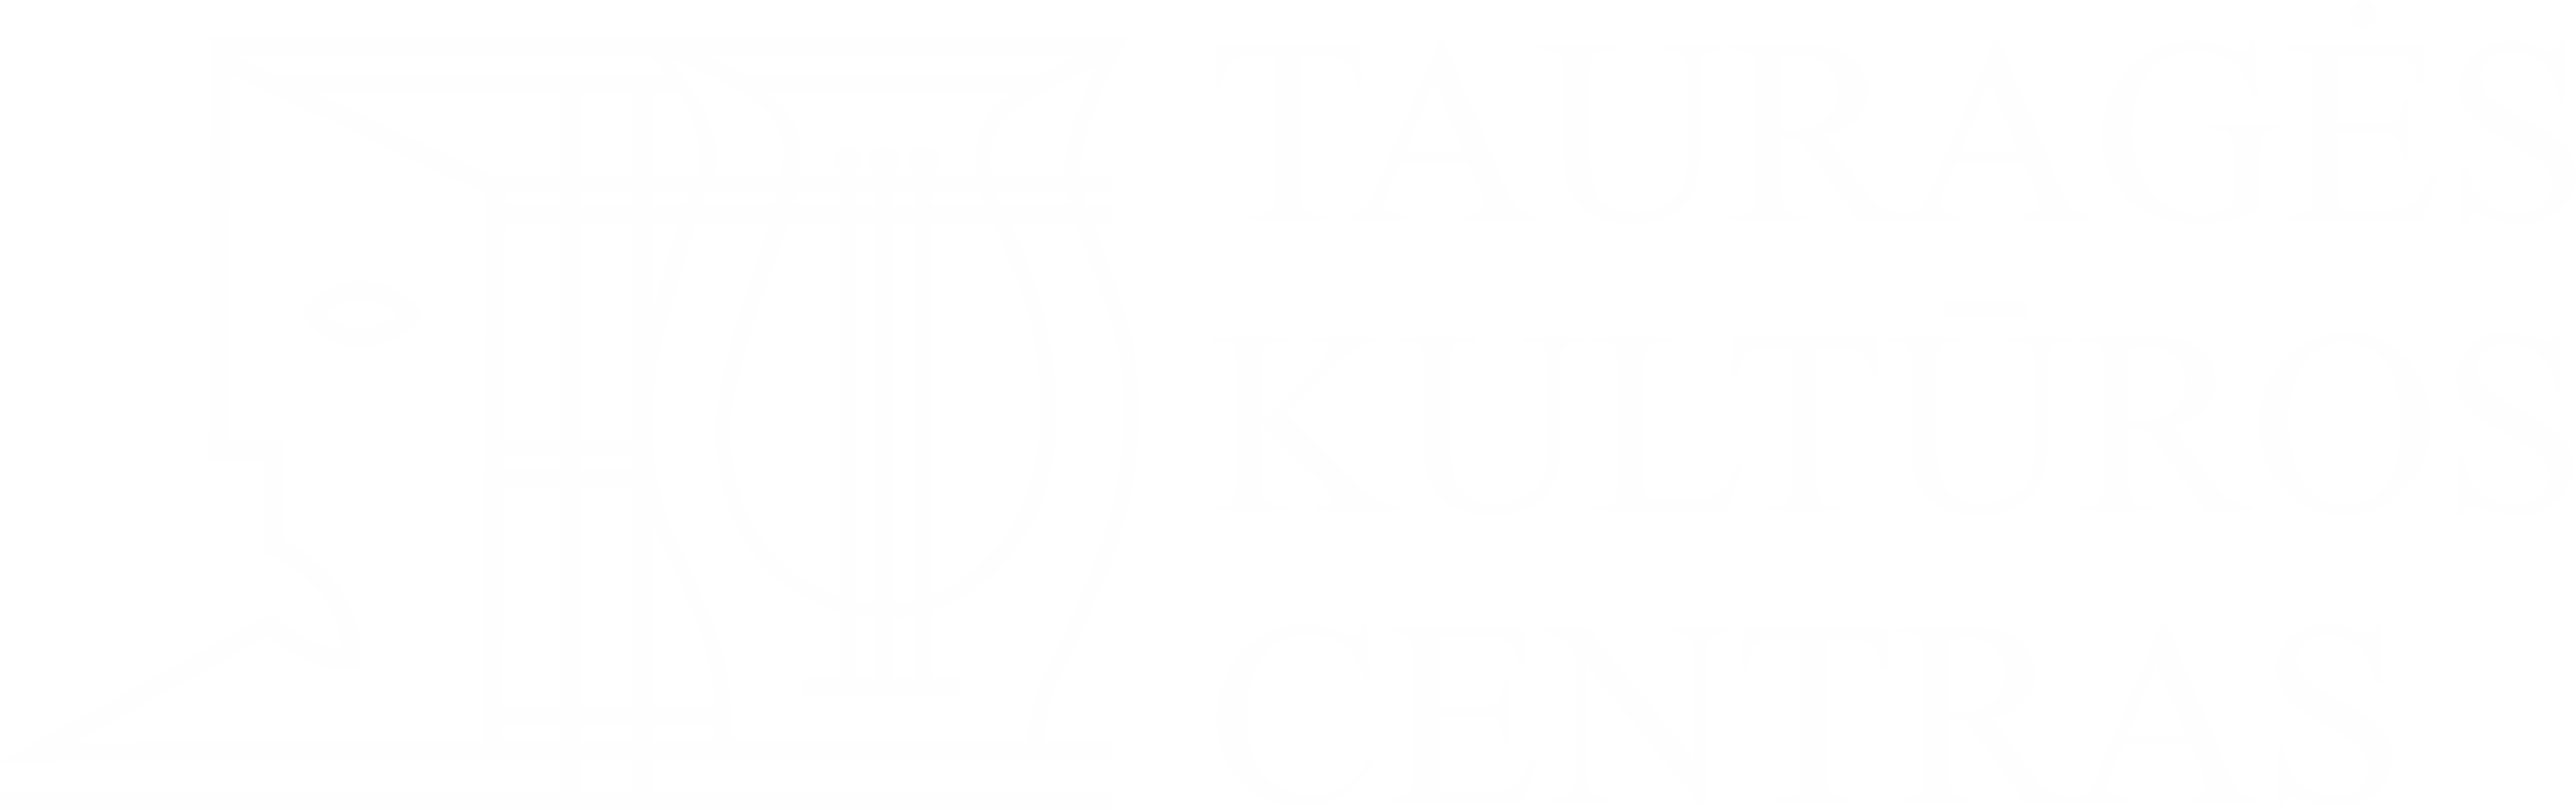 Taurages kultūros centras